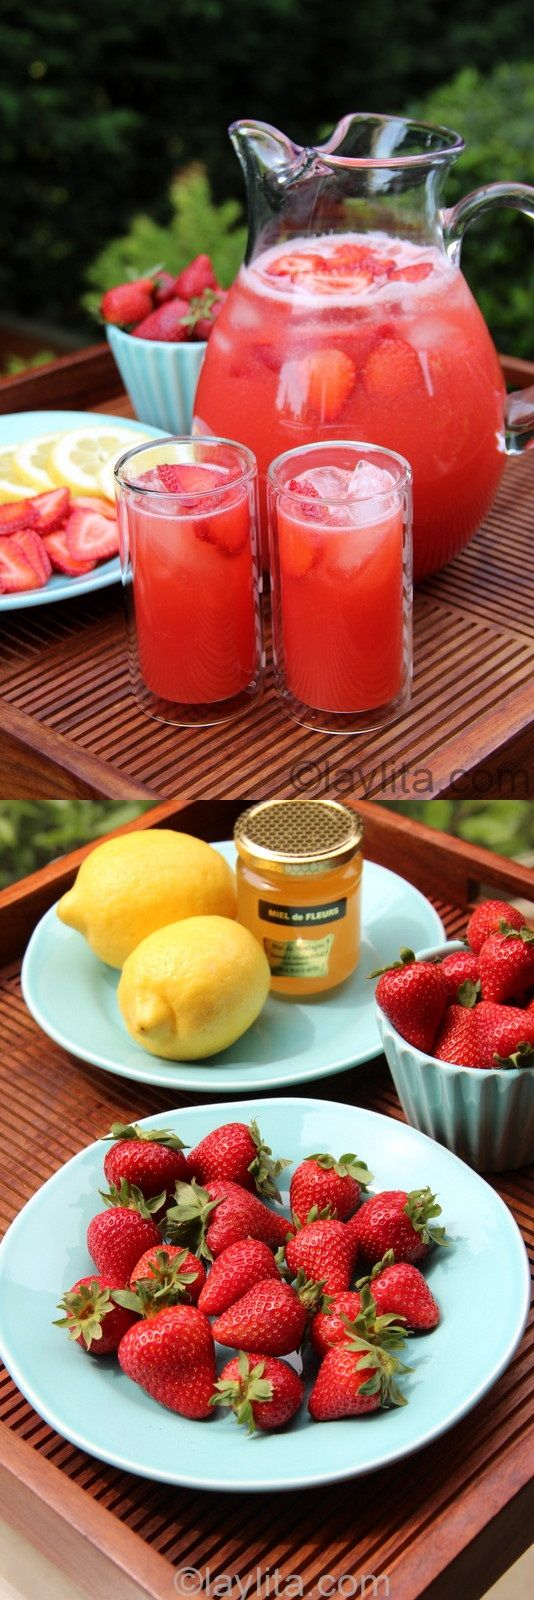 Strawberry Lemonade~ Homemade strawberry lemonade recipe, made in the blender using lemons, strawberries and honey.